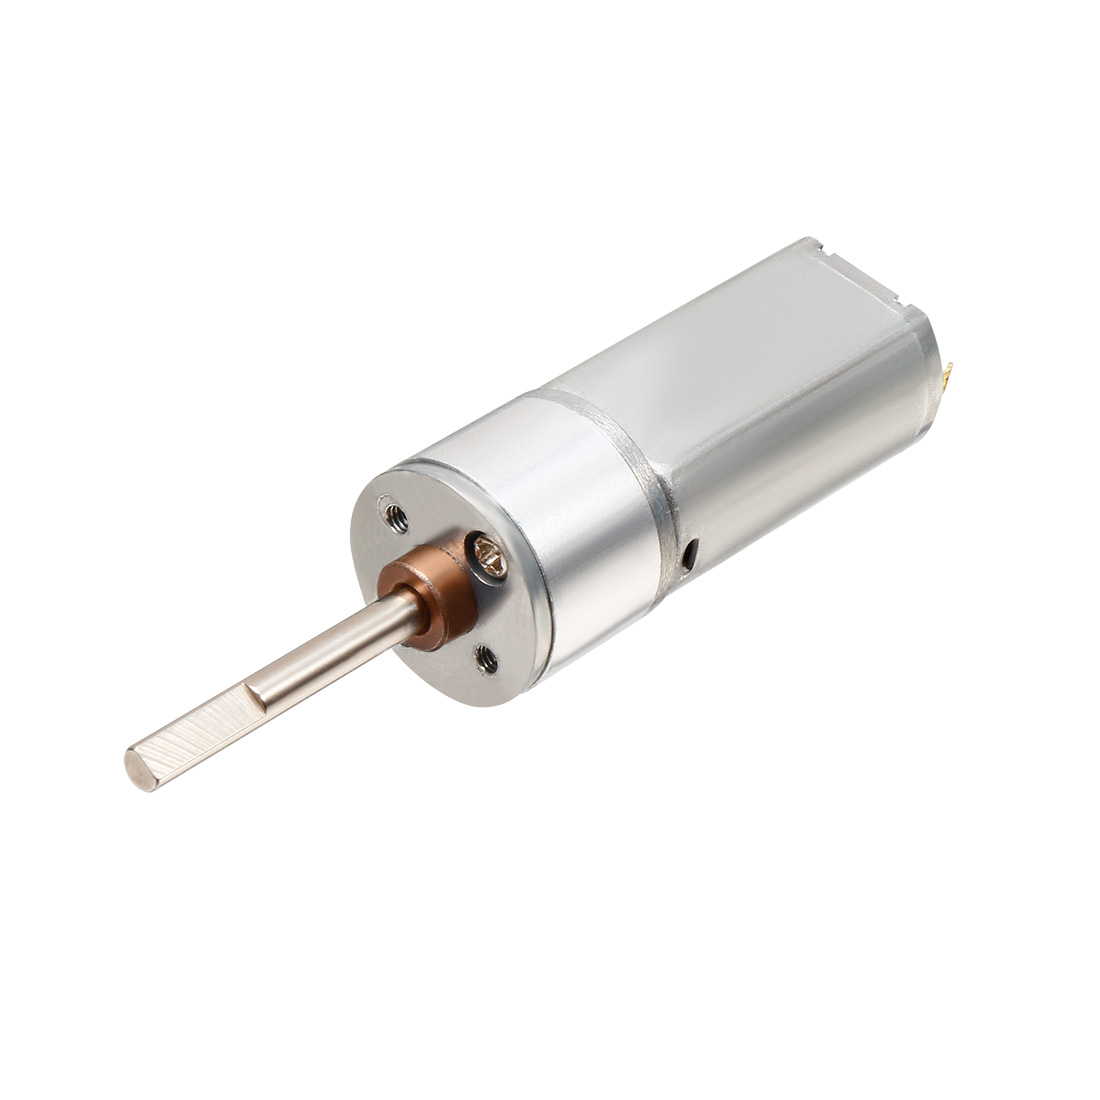 3mm Dia Drive Shaft 600rpm Output High Torque Rotary Speed Reducing Connecting Cylinder Shape Electric Geared Box Motor DC 9V